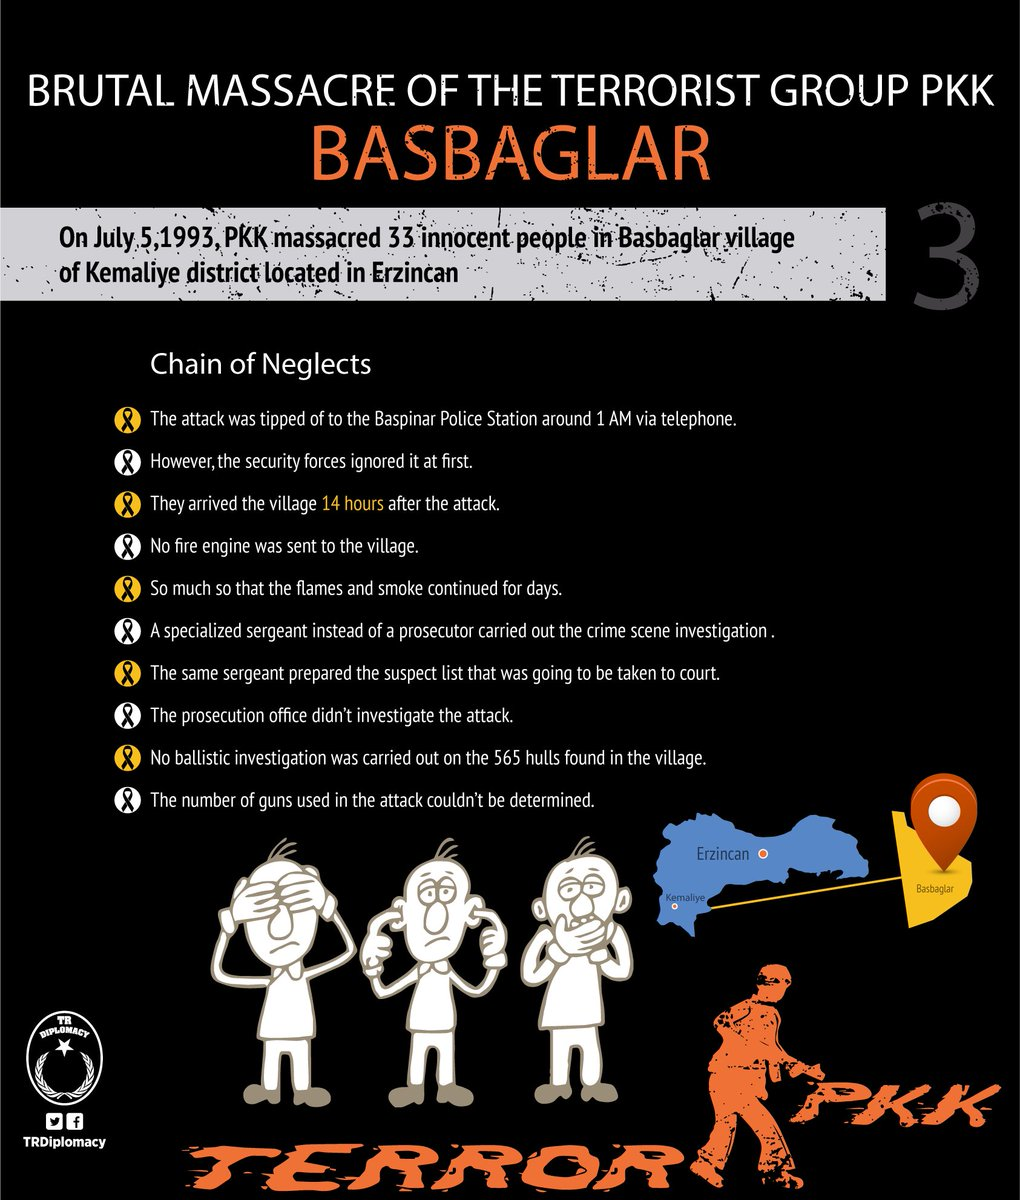 Brutal Massacre of the Terrorist Group PKK: Basbaglar